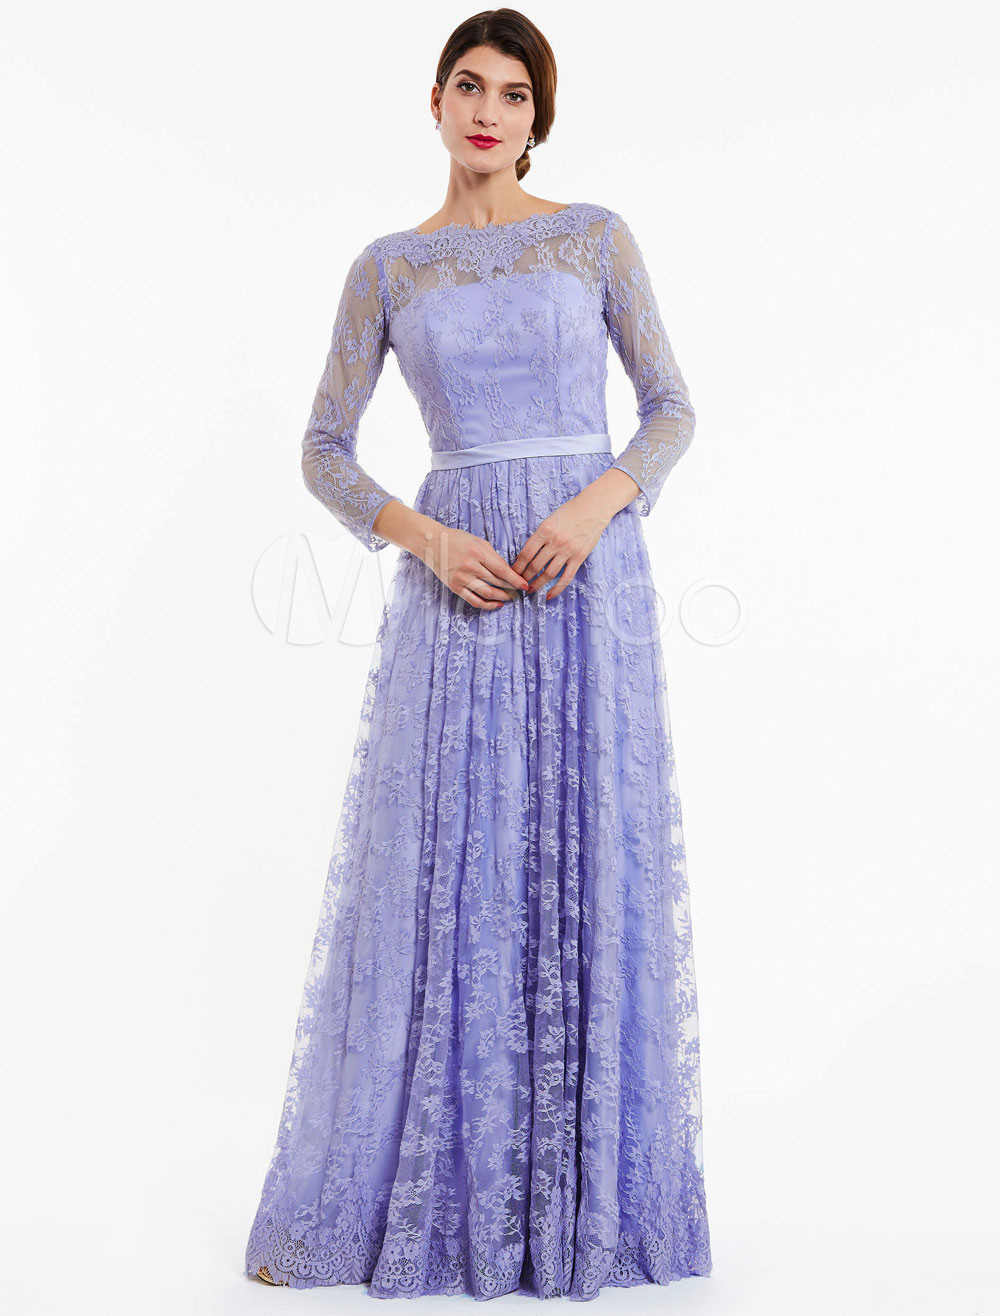 Buy Lace Evening Dresses Backless Lilac Long Sleeve Illusion Sash Bateau Floor Length Formal Occasion Dress for $106.79 in Milanoo store